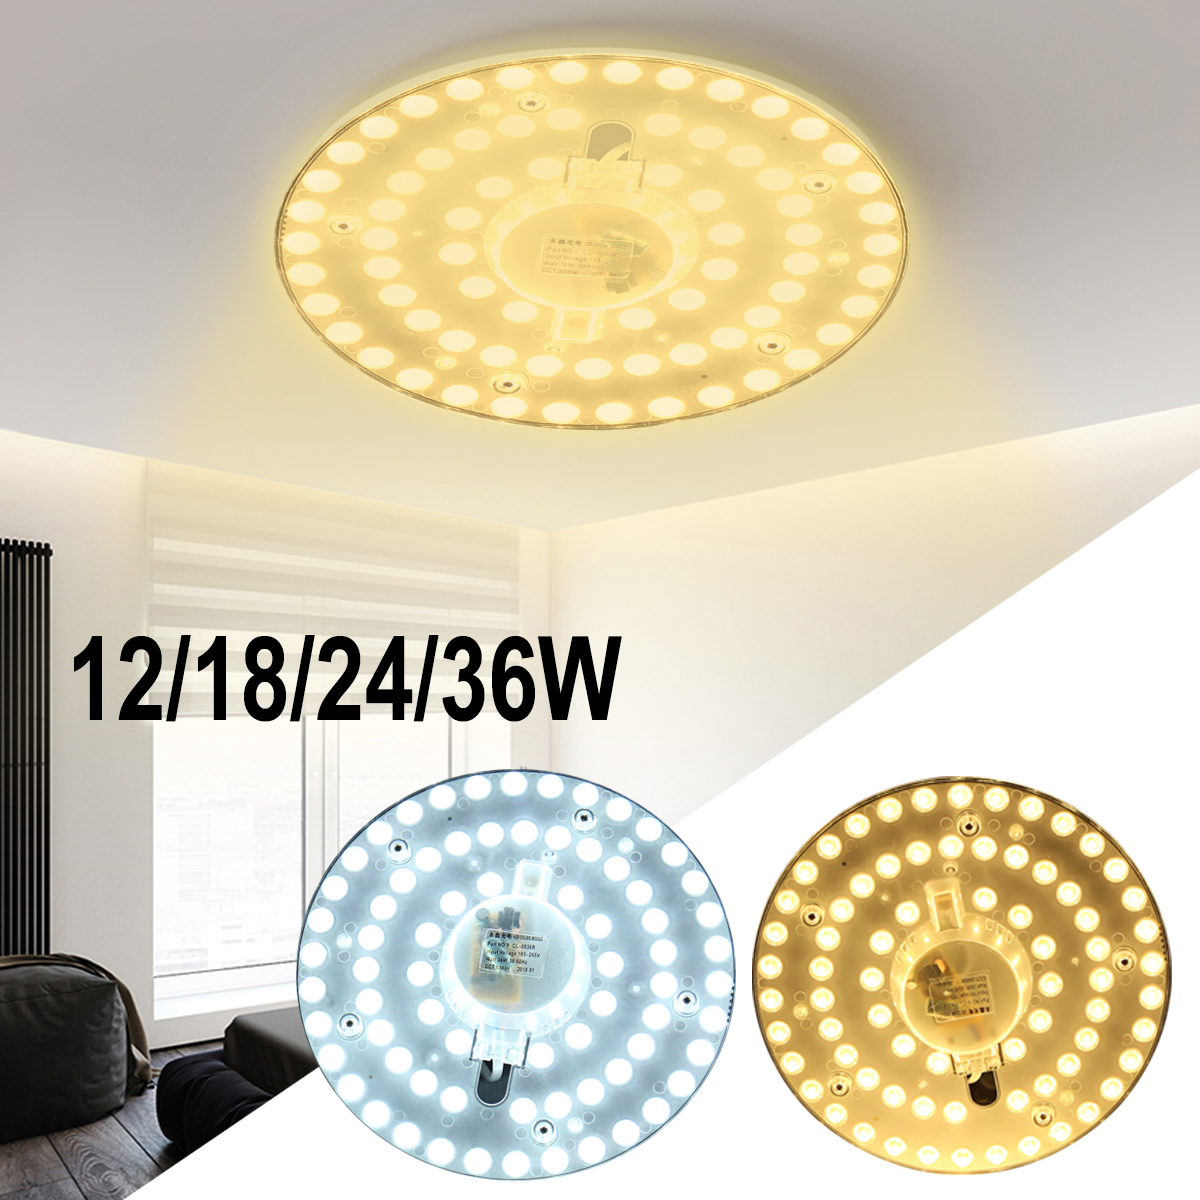 Ceiling Lights Learned 12/18/24/36w Round Ceiling Lights Modern Led Ceiling Lamp Fixtures Lighting For Living Room Bedroom Kitchen Decoration Profit Small Lights & Lighting